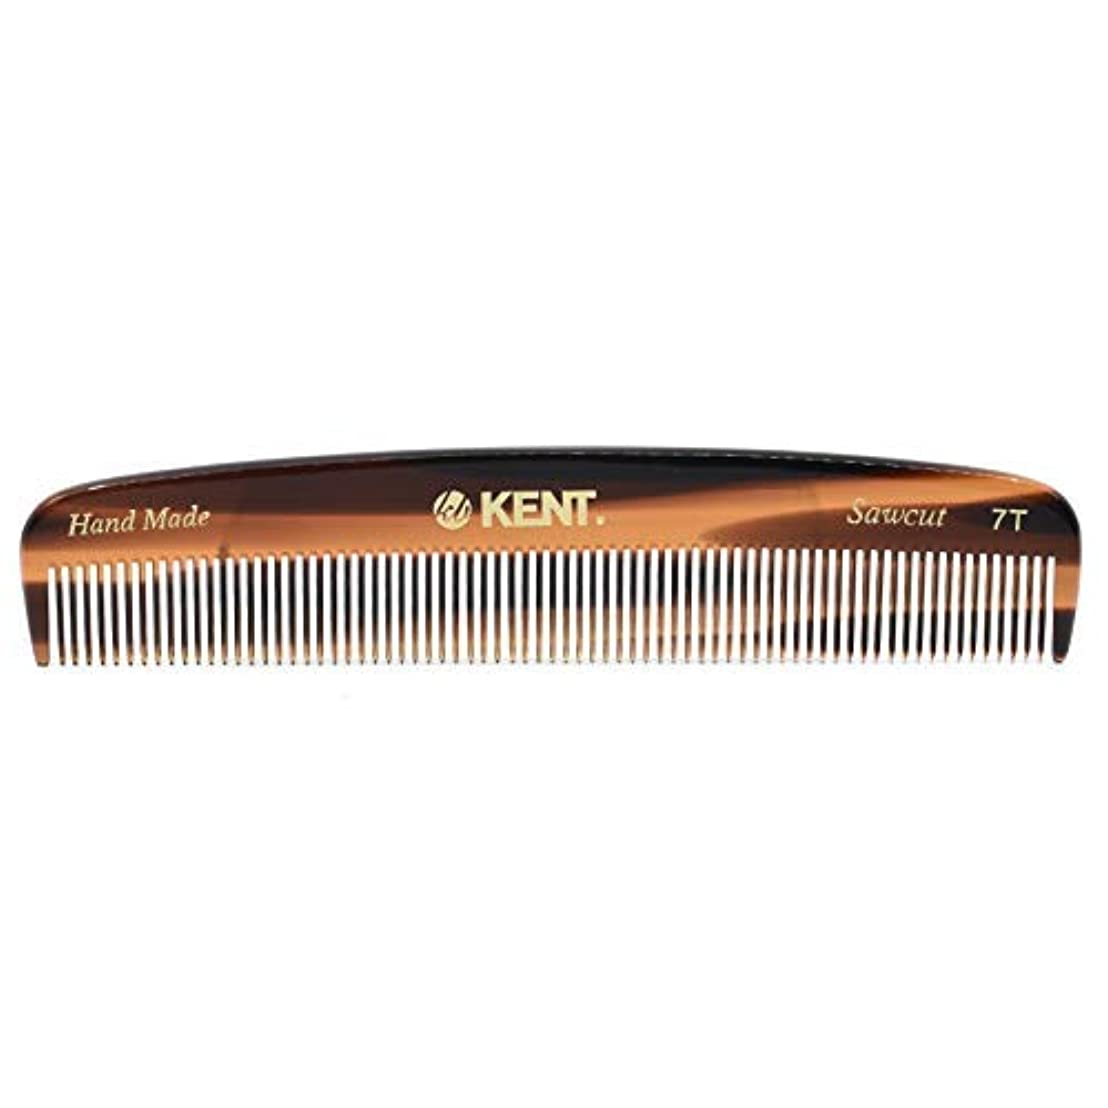 反対するトレイルヒューバートハドソンKent 7T - Handmade Fine Teeth Pocket Comb for Men and Women - Cellulose Acetate, Tortoise Shell (5 1/2